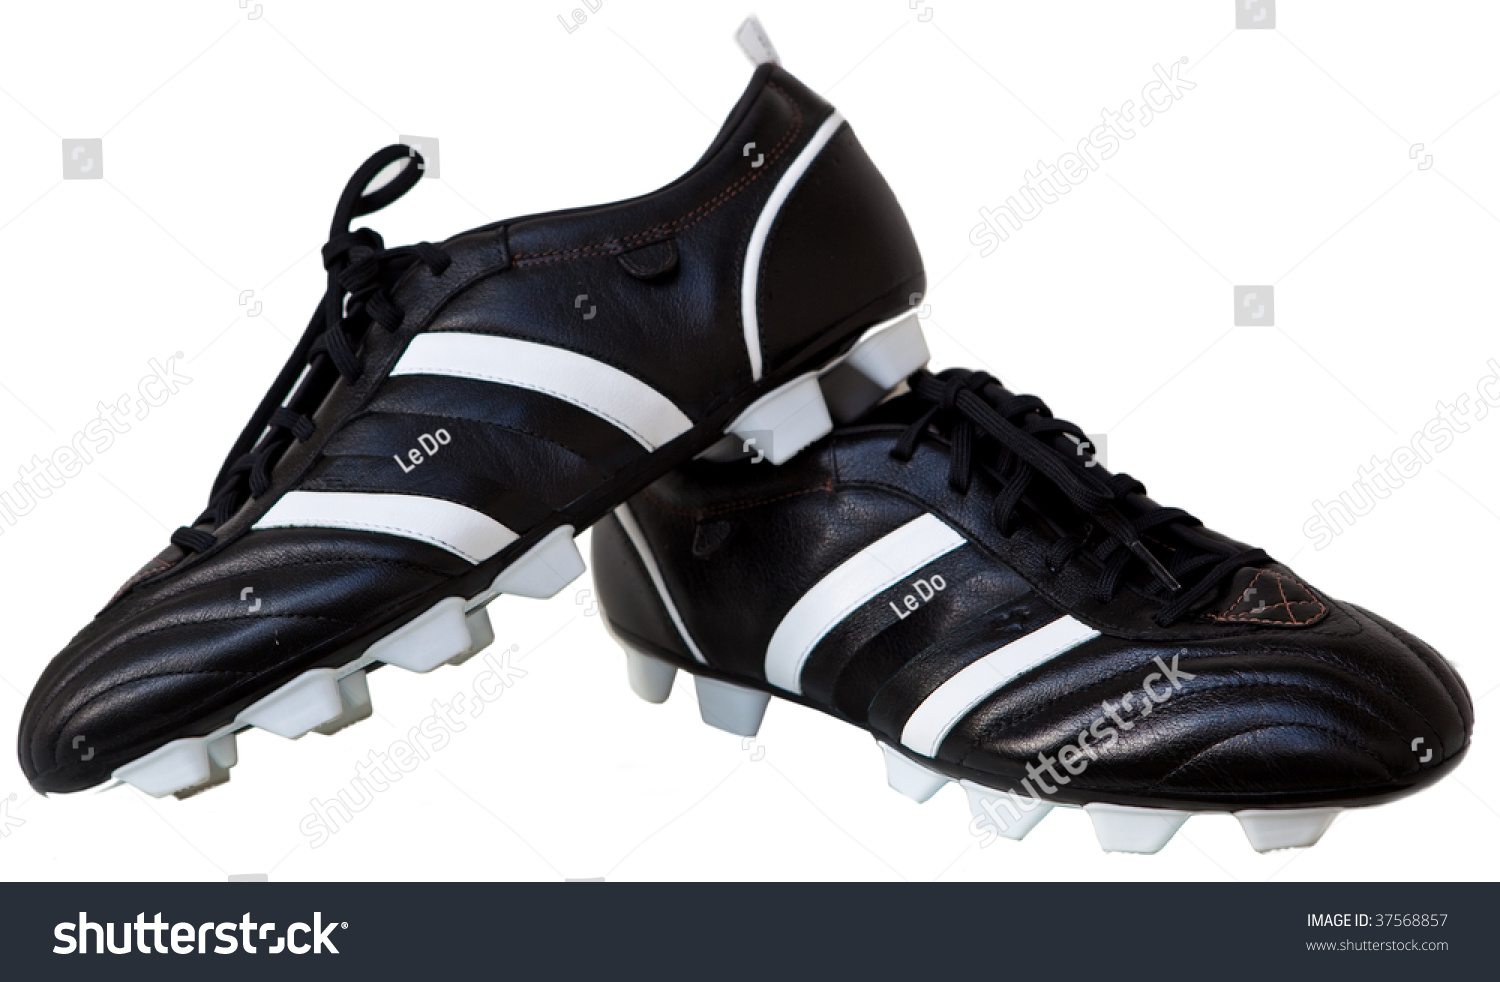 football shoes clipart - photo #36